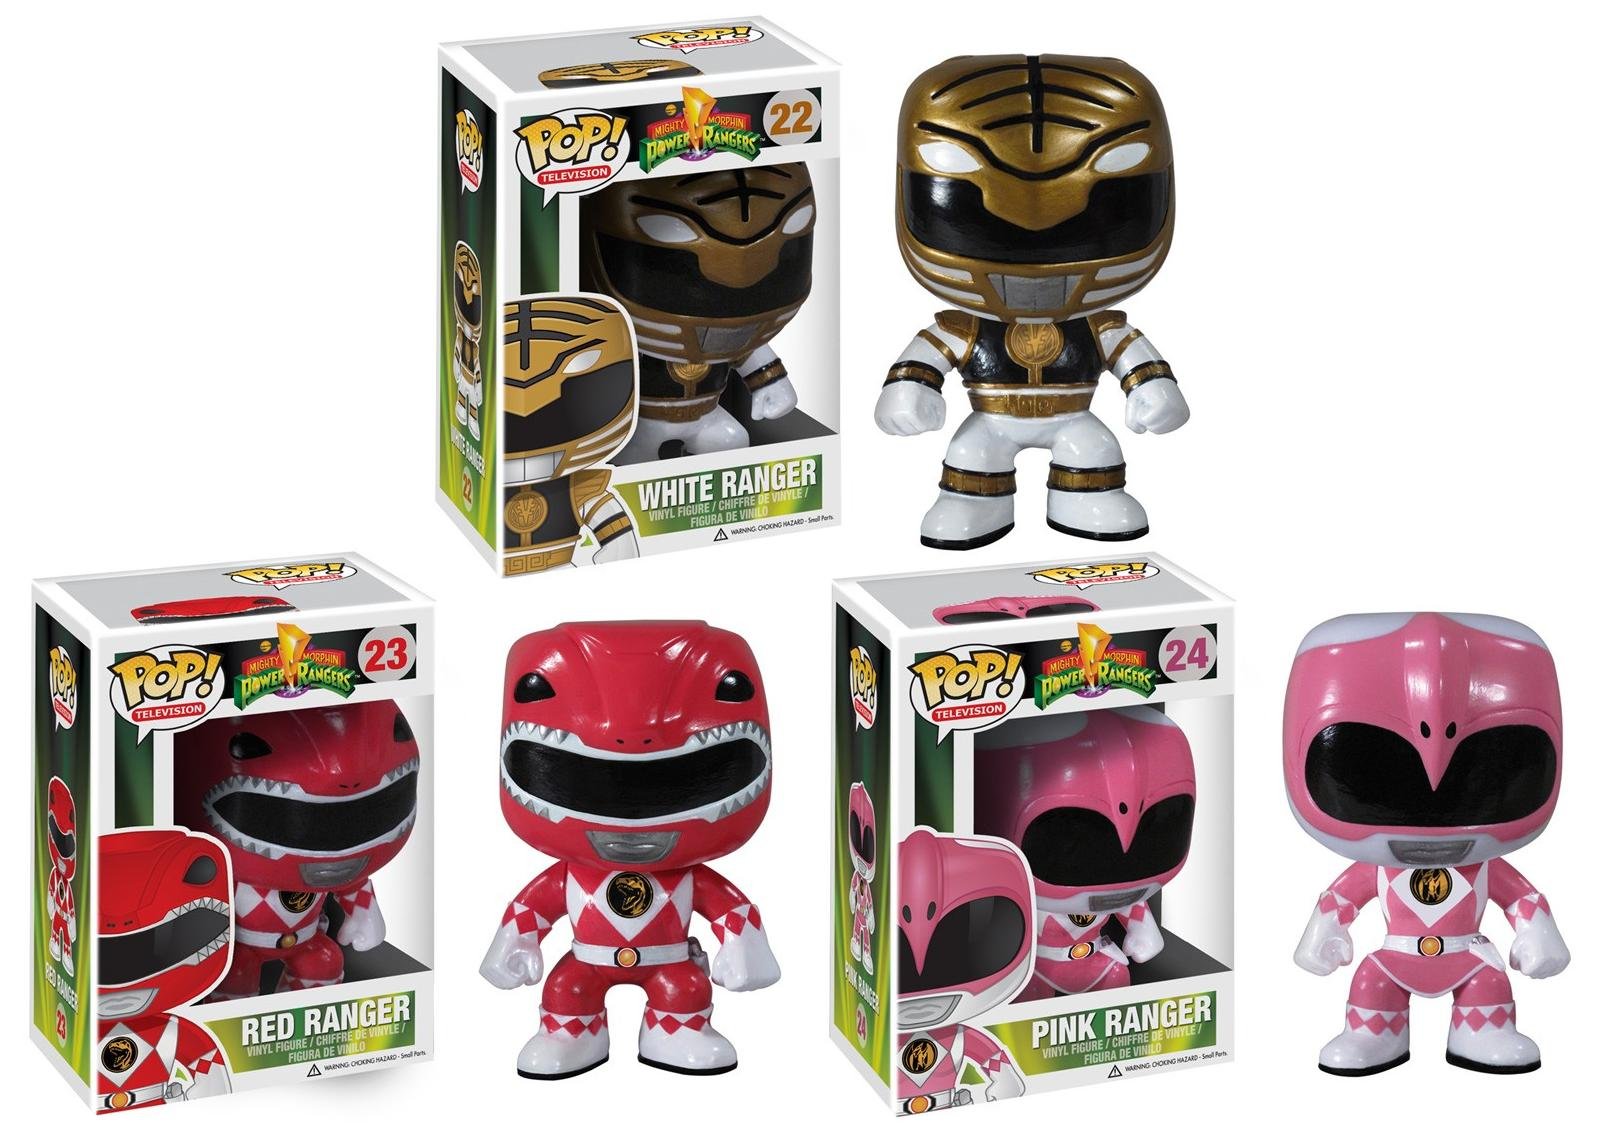 Mighty Morphin Power Rangers Pop! Television Series 1 by Funko - White